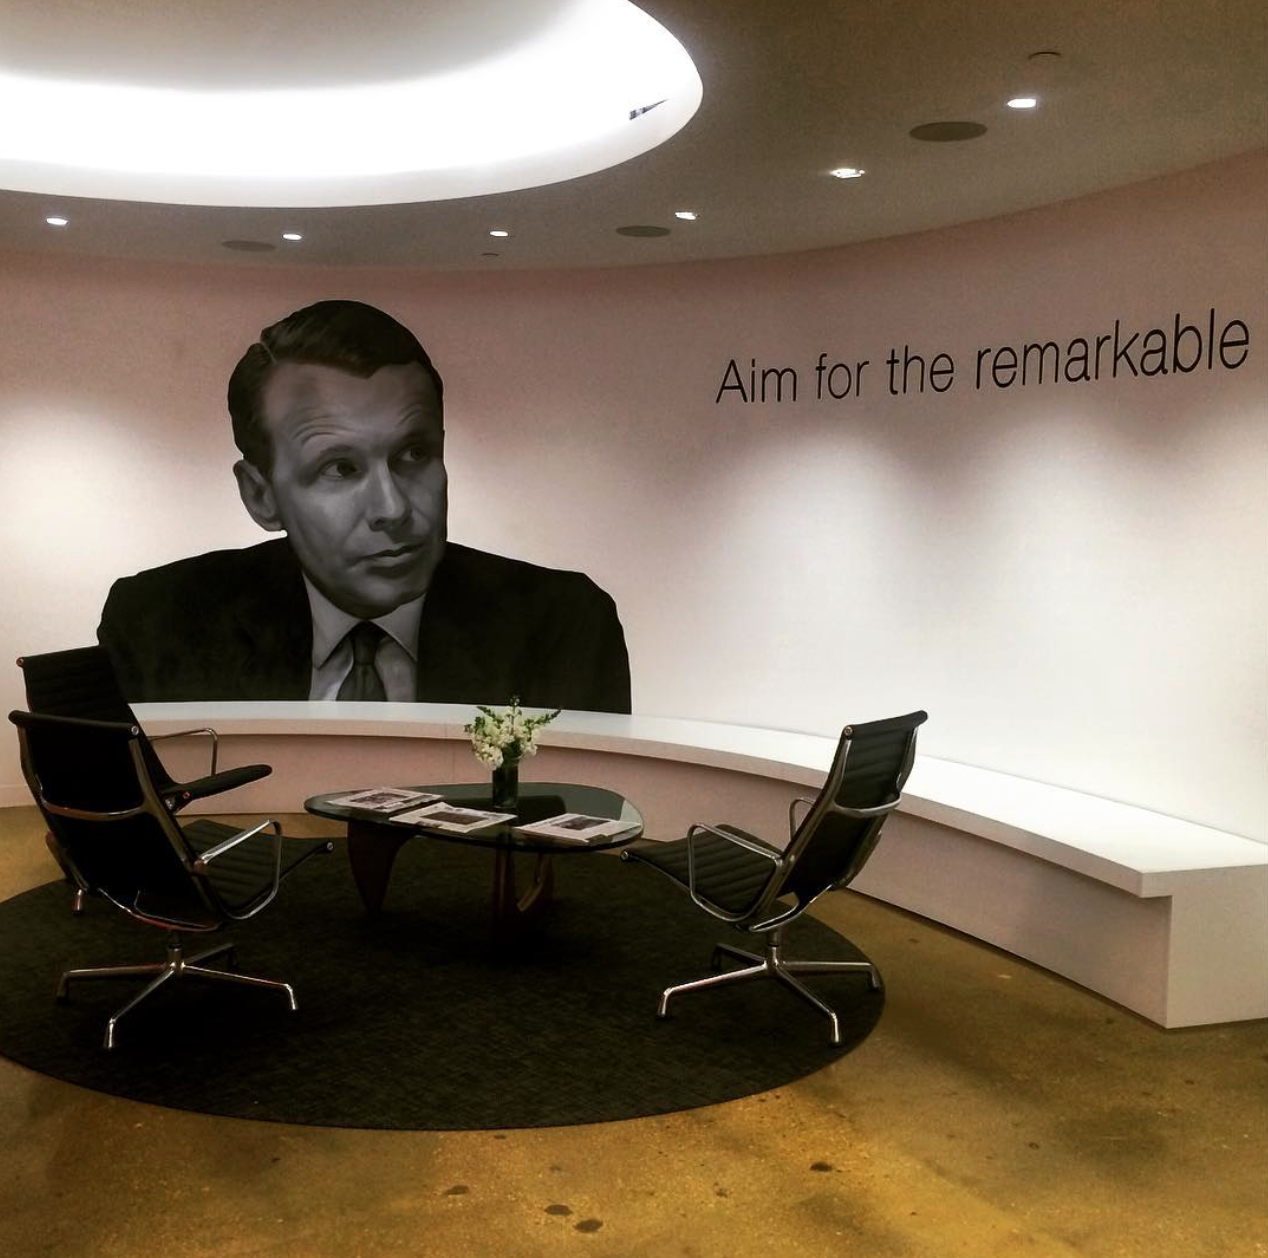 Aim for the remarkable. #TravelTuesday to the new and improved, Washington DC office http://t.co/uYBUFlsOx2